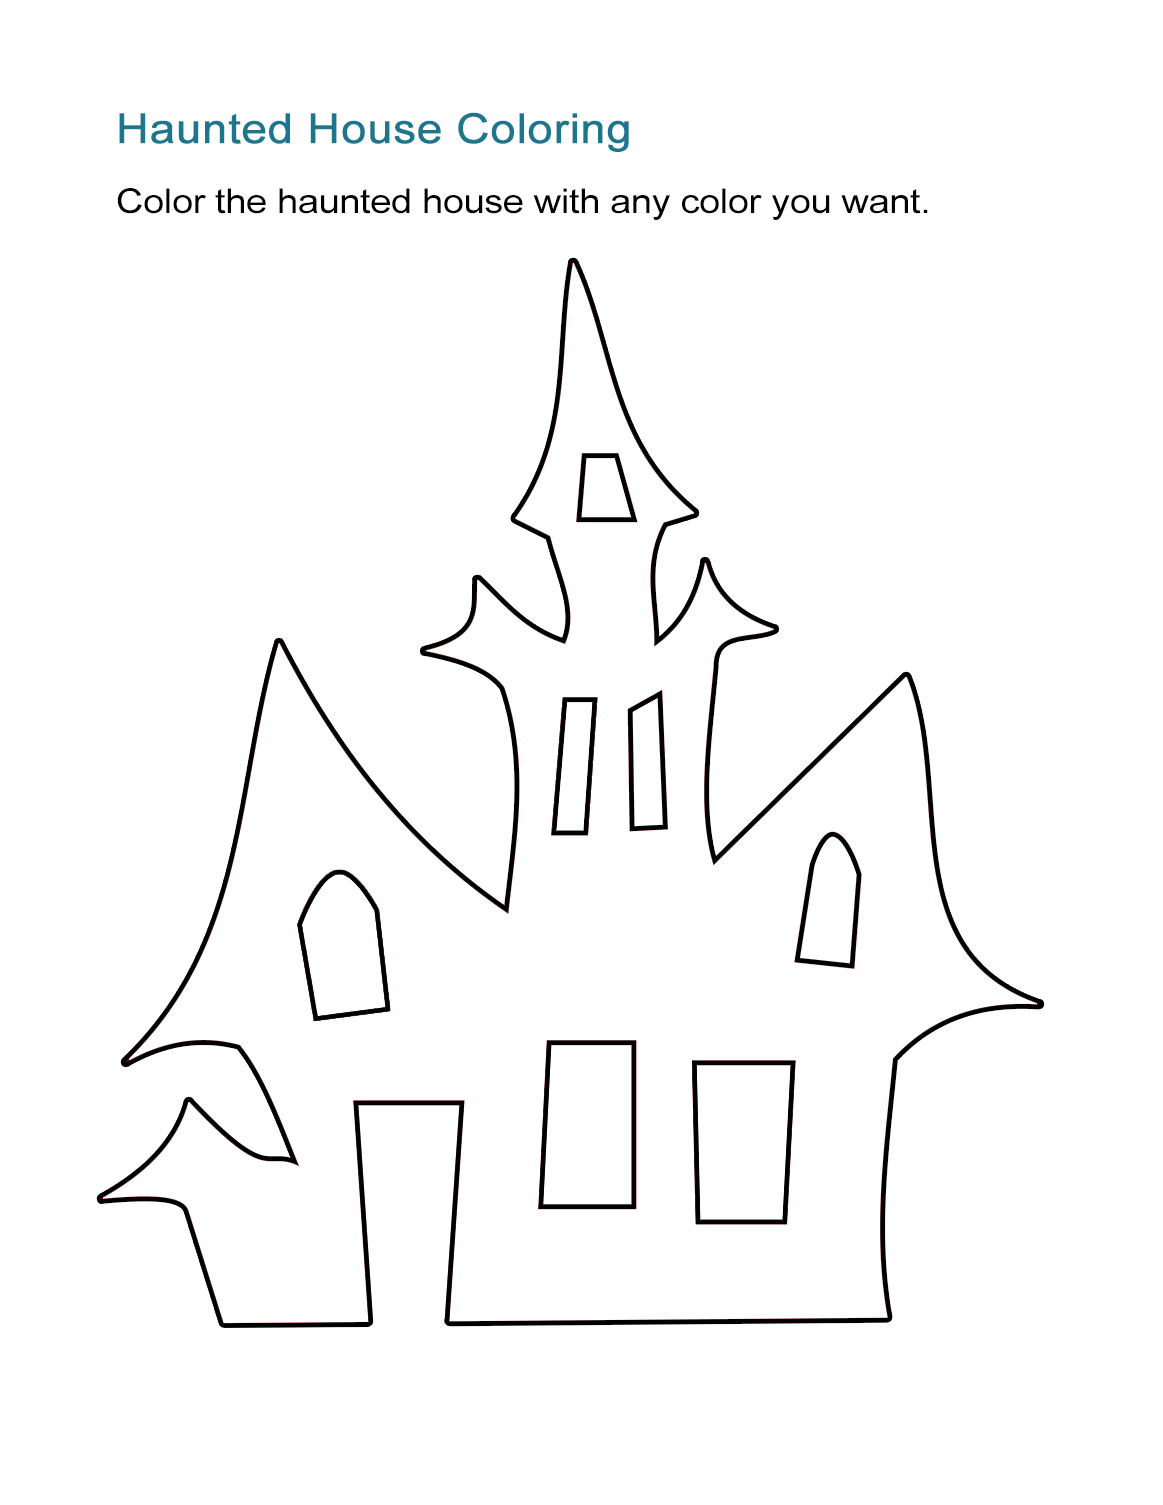 Exelent Haunted House Coloring Sheets Ensign Printable Coloring